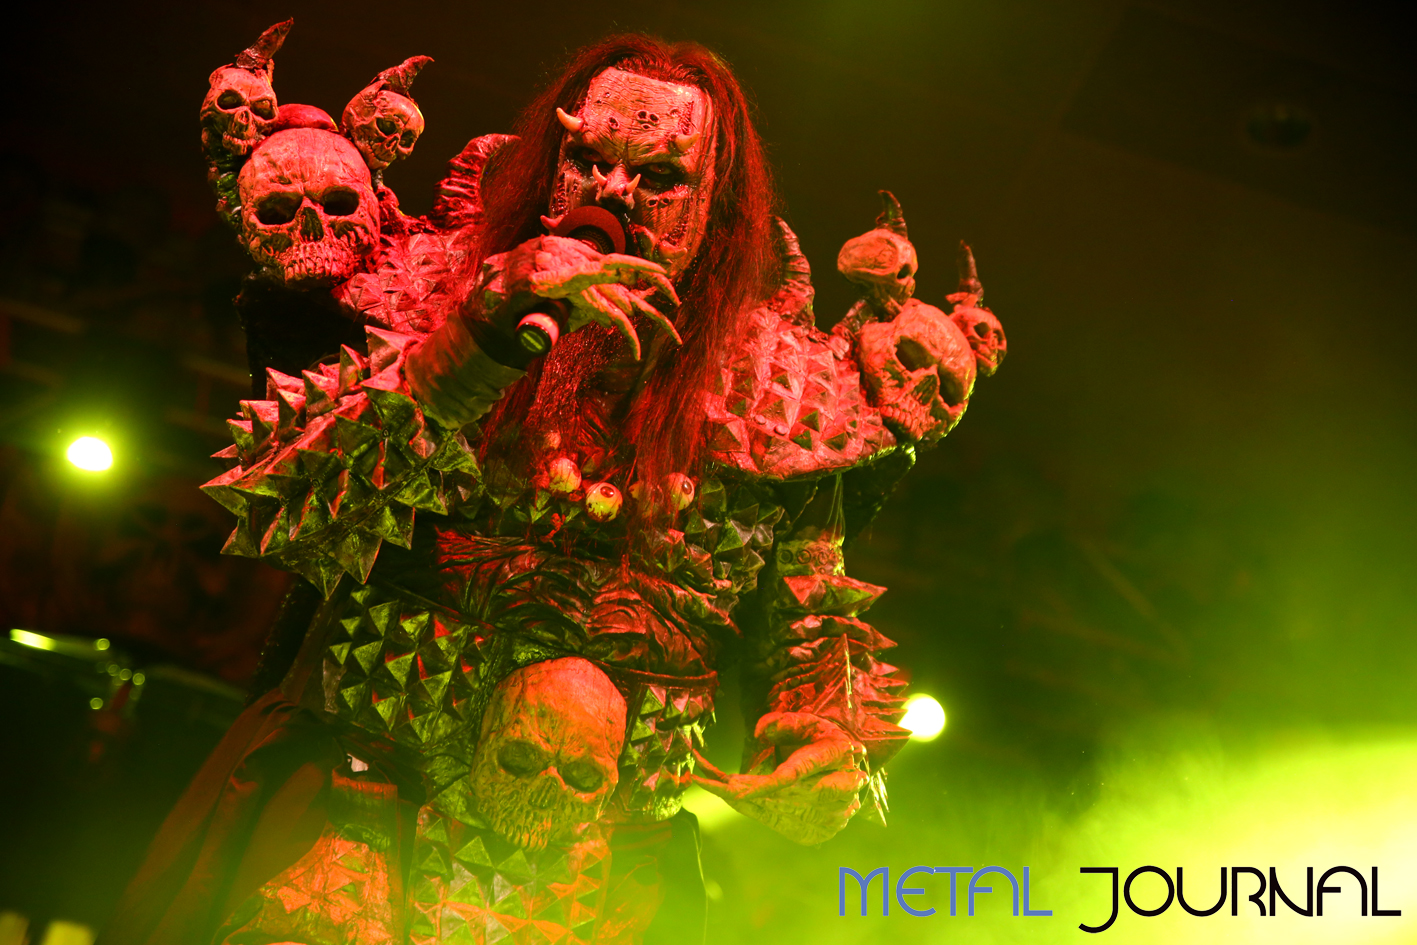 lordi - metal journal 2018 pic 5